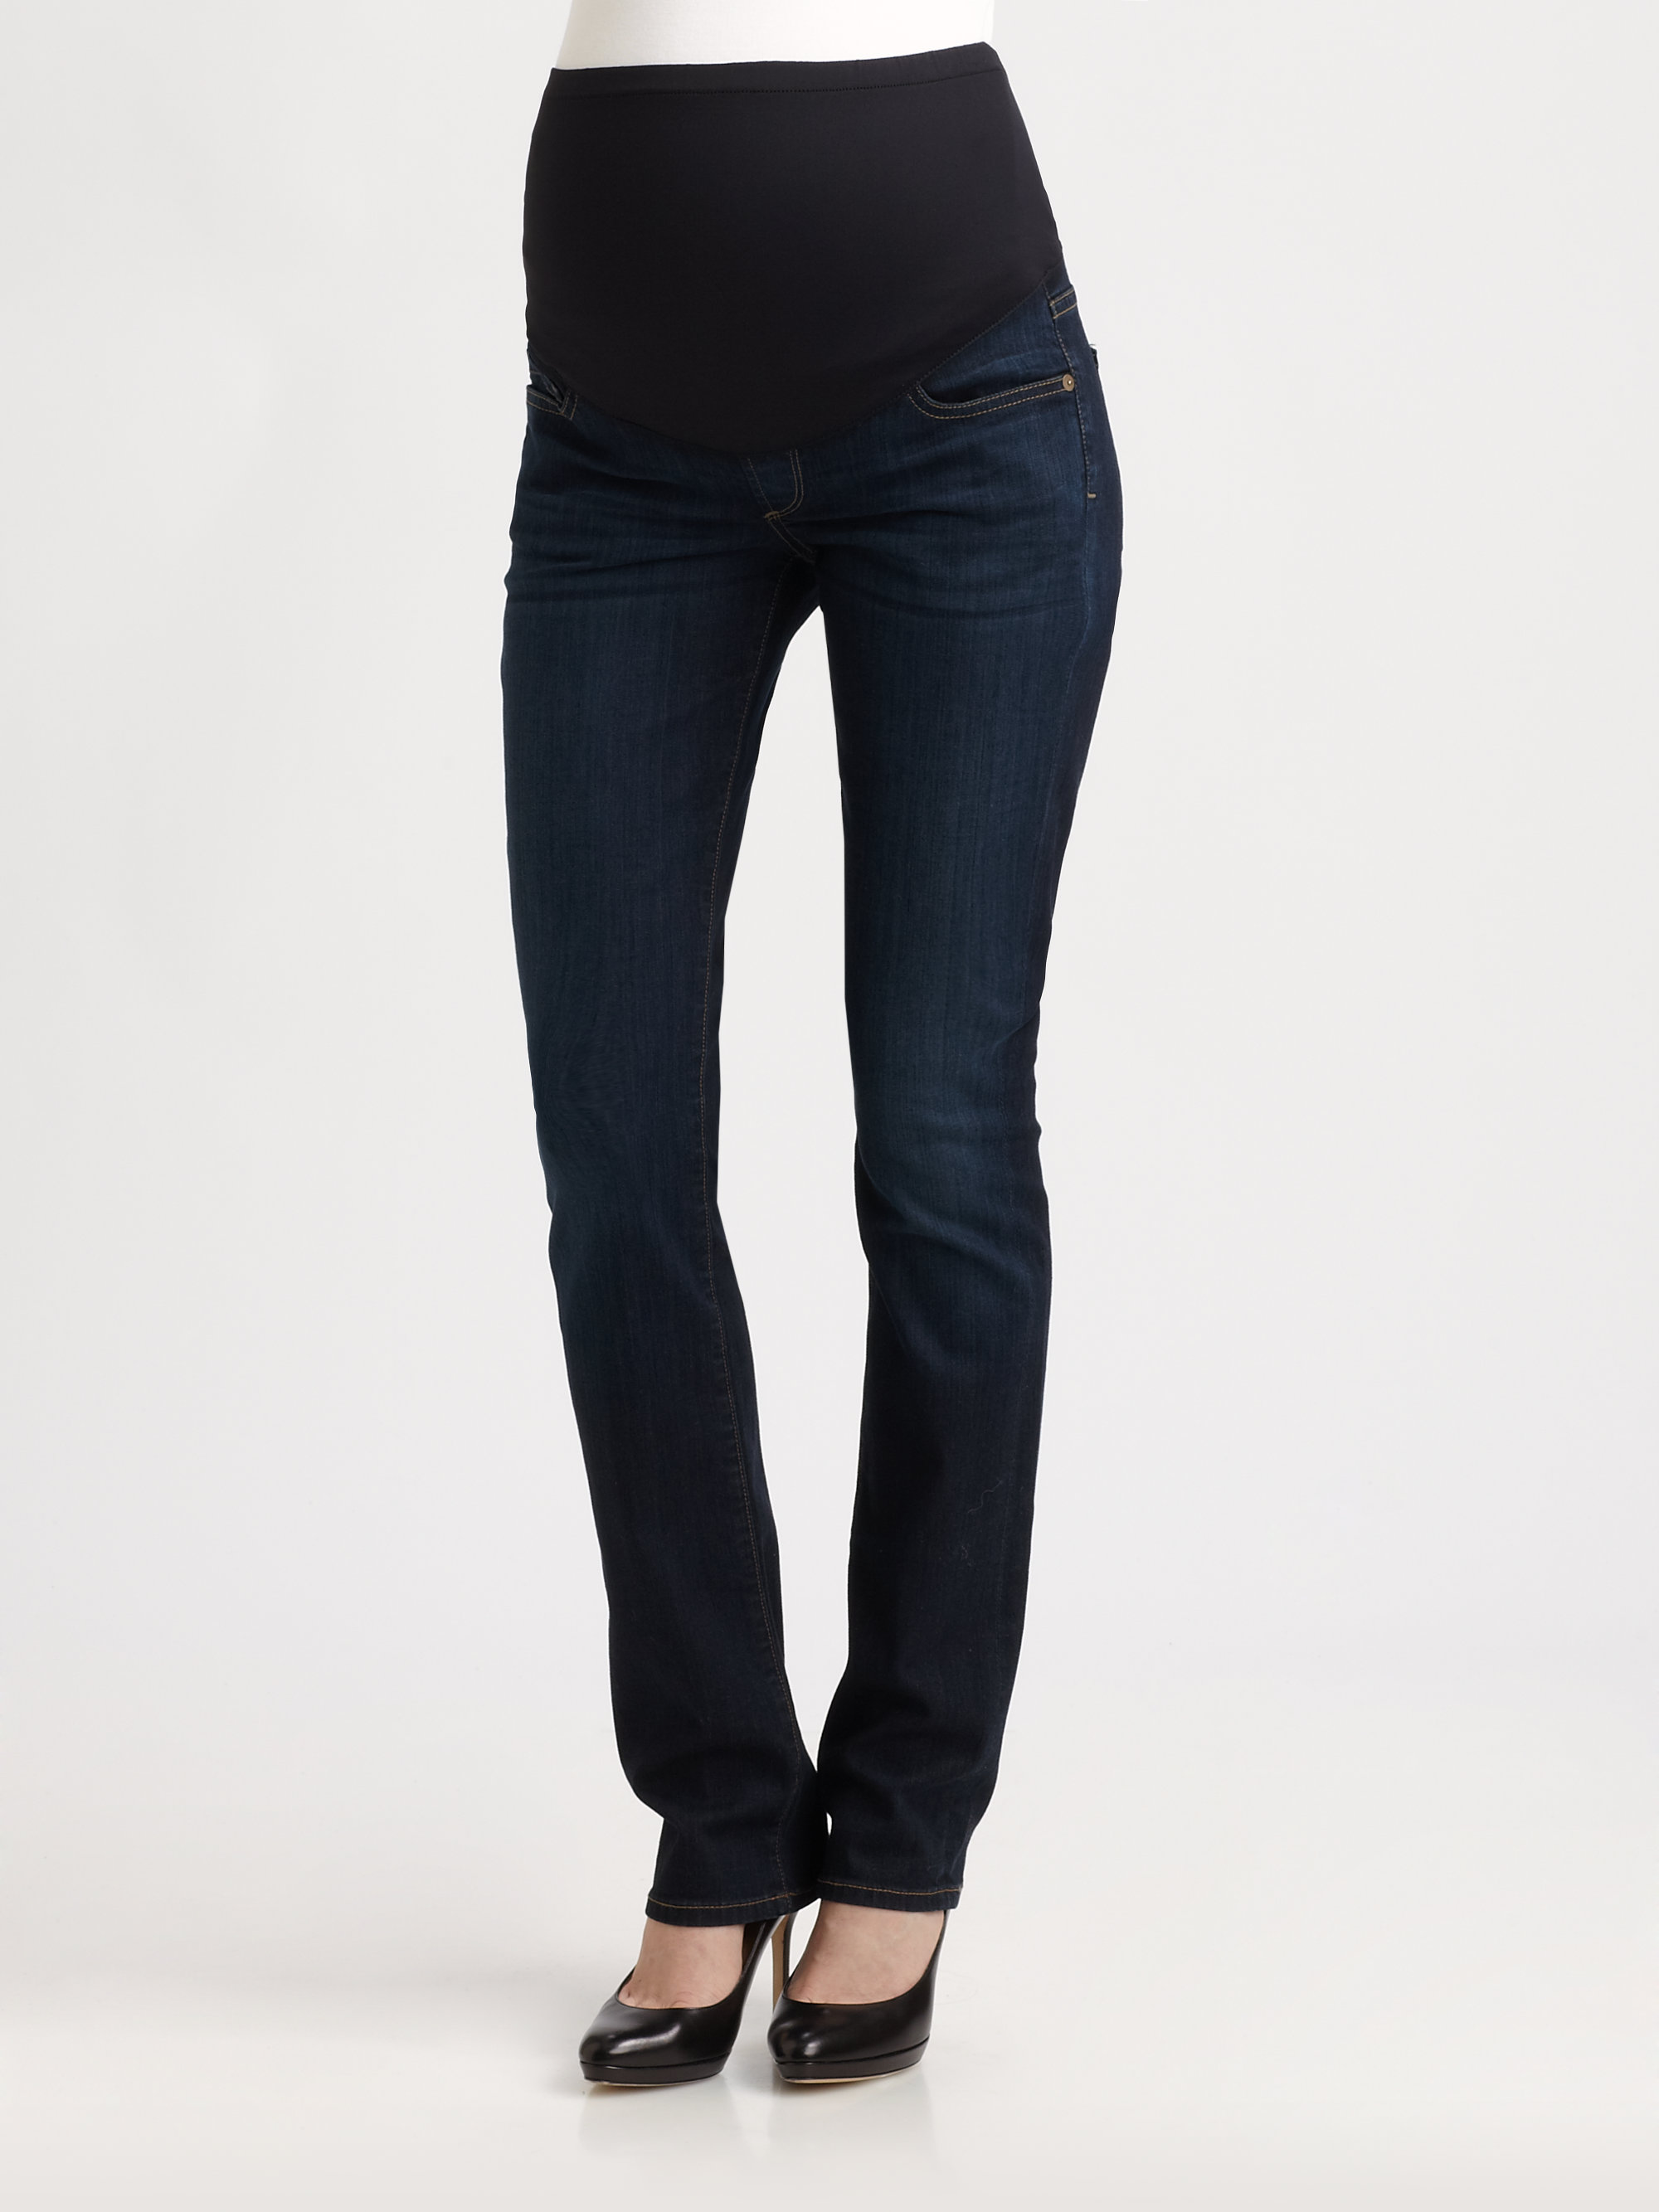 Citizens of humanity Ava Straight Leg Jeans in Black | Lyst